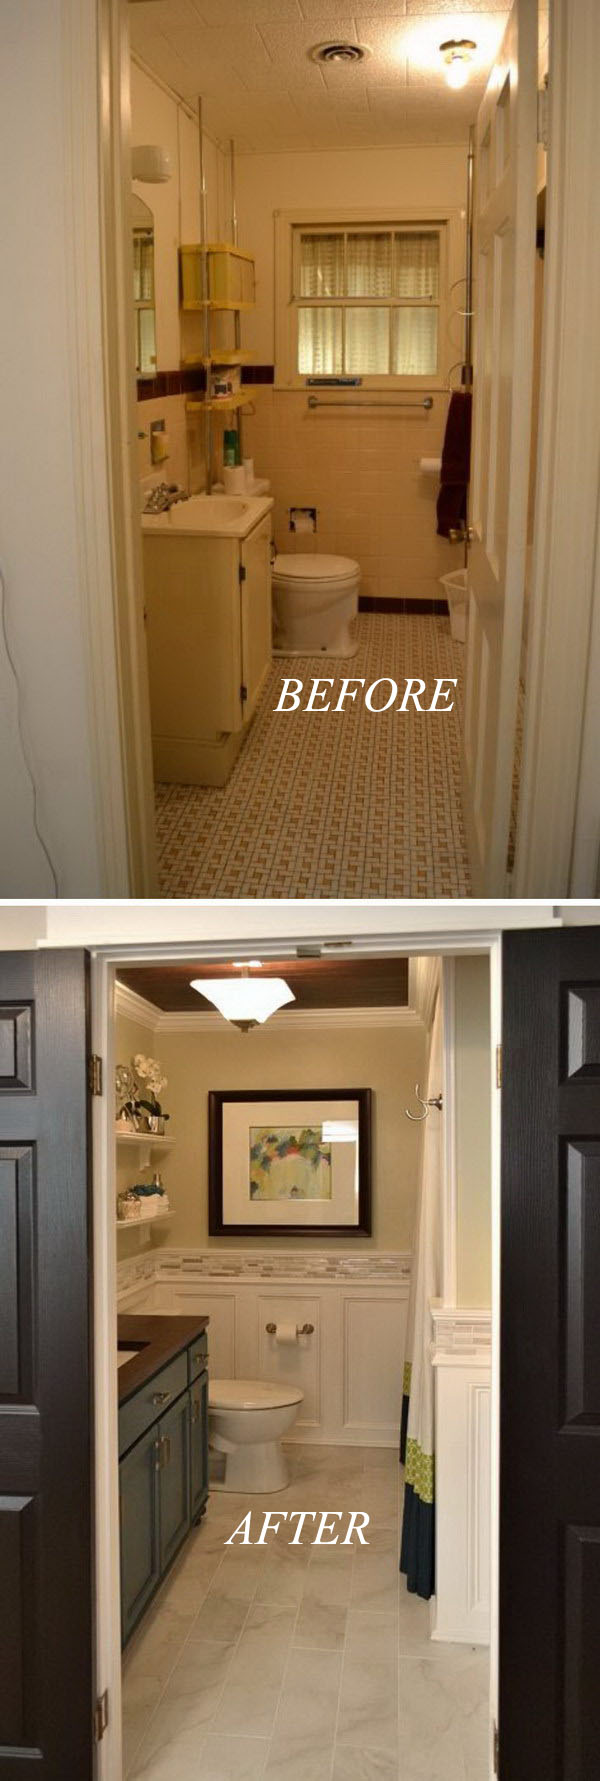 33 Inspirational Small Bathroom Remodel Before and After ... on Small Bathroom Renovations  id=94234